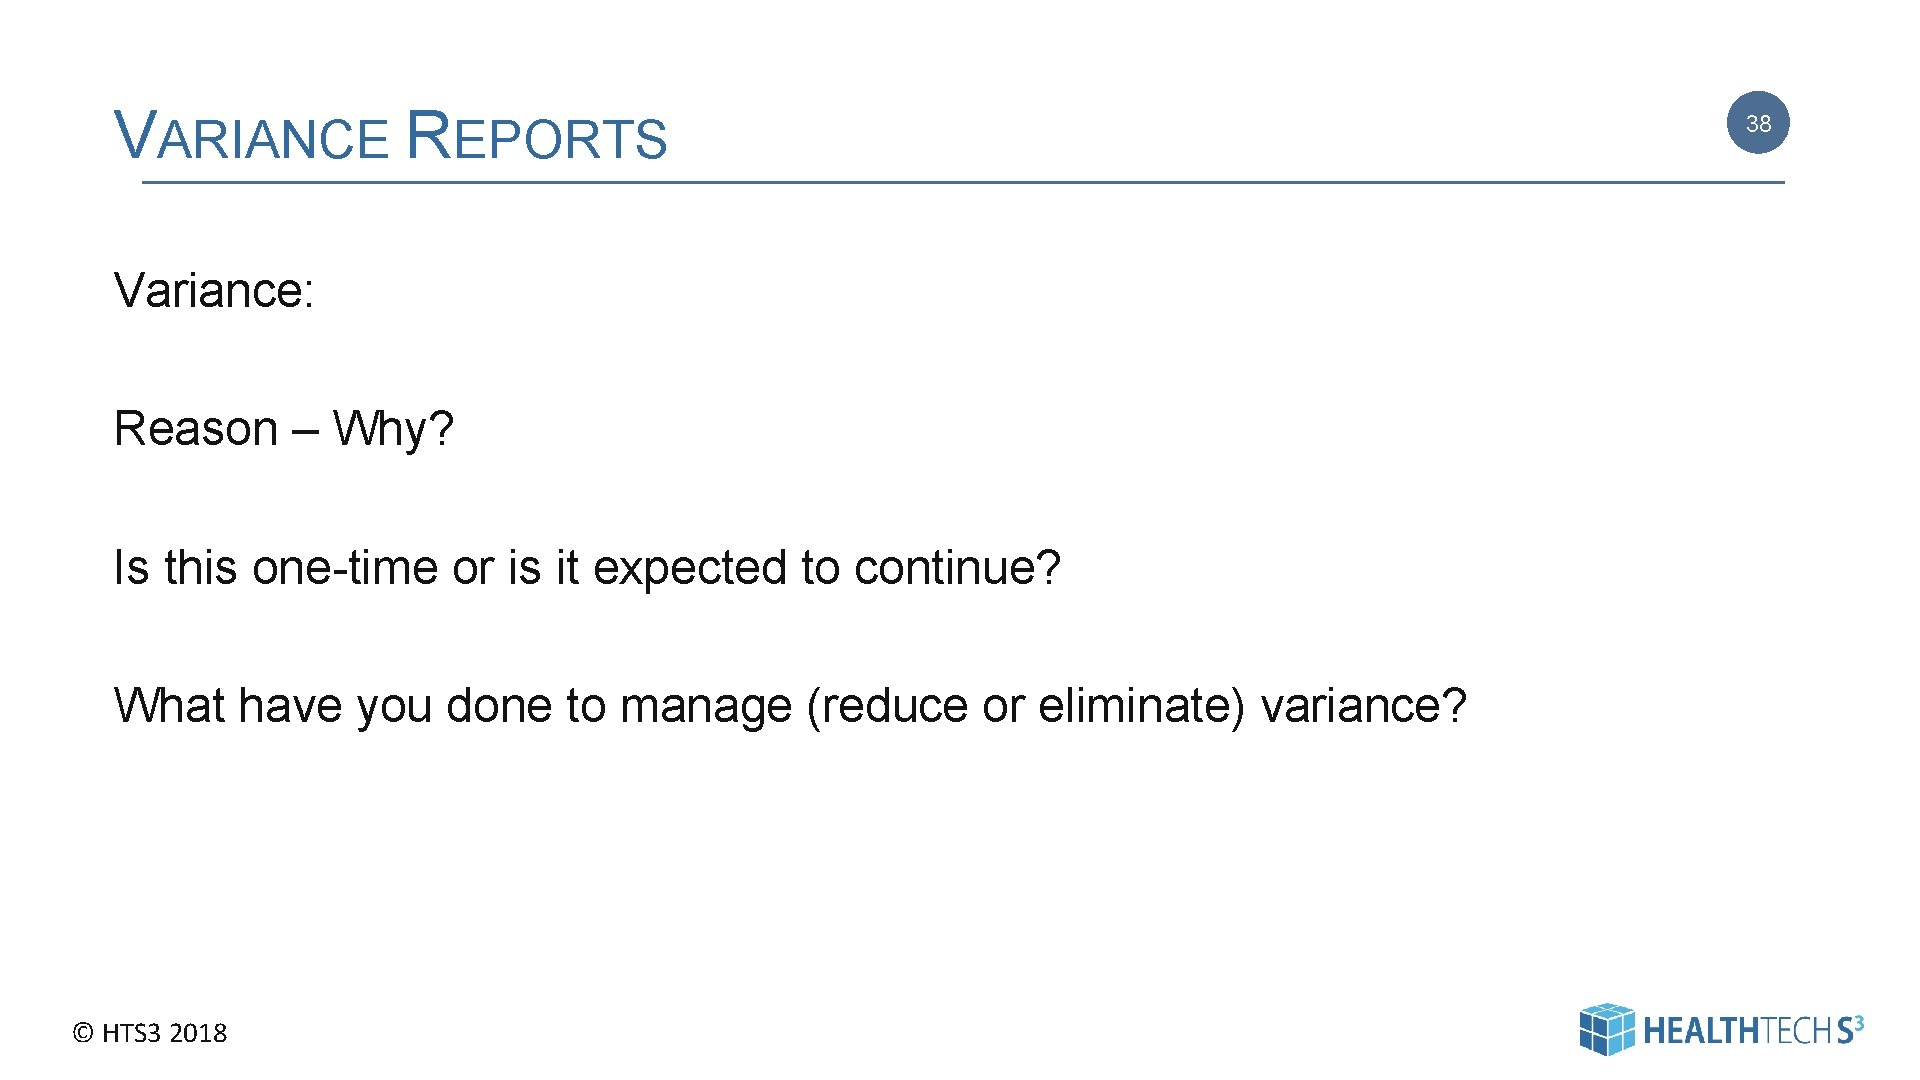 VARIANCE REPORTS Variance: Reason – Why? Is this one-time or is it expected to